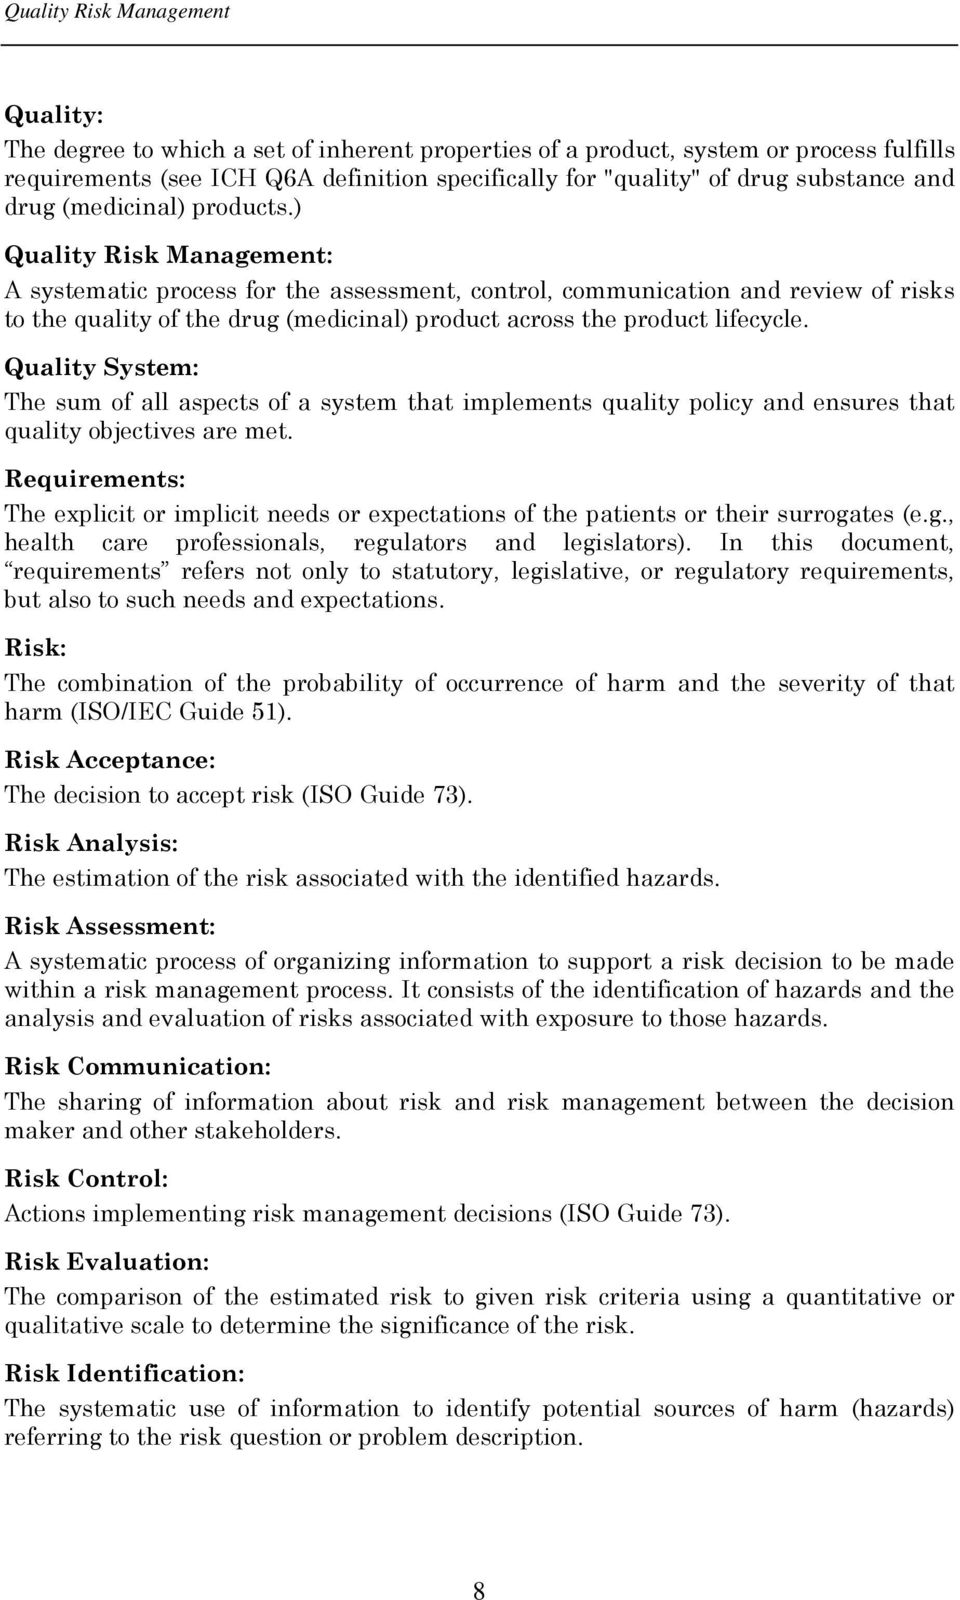 ) Quality Risk Management: A systematic process for the assessment, control, communication and review of risks to the quality of the drug (medicinal) product across the product lifecycle.